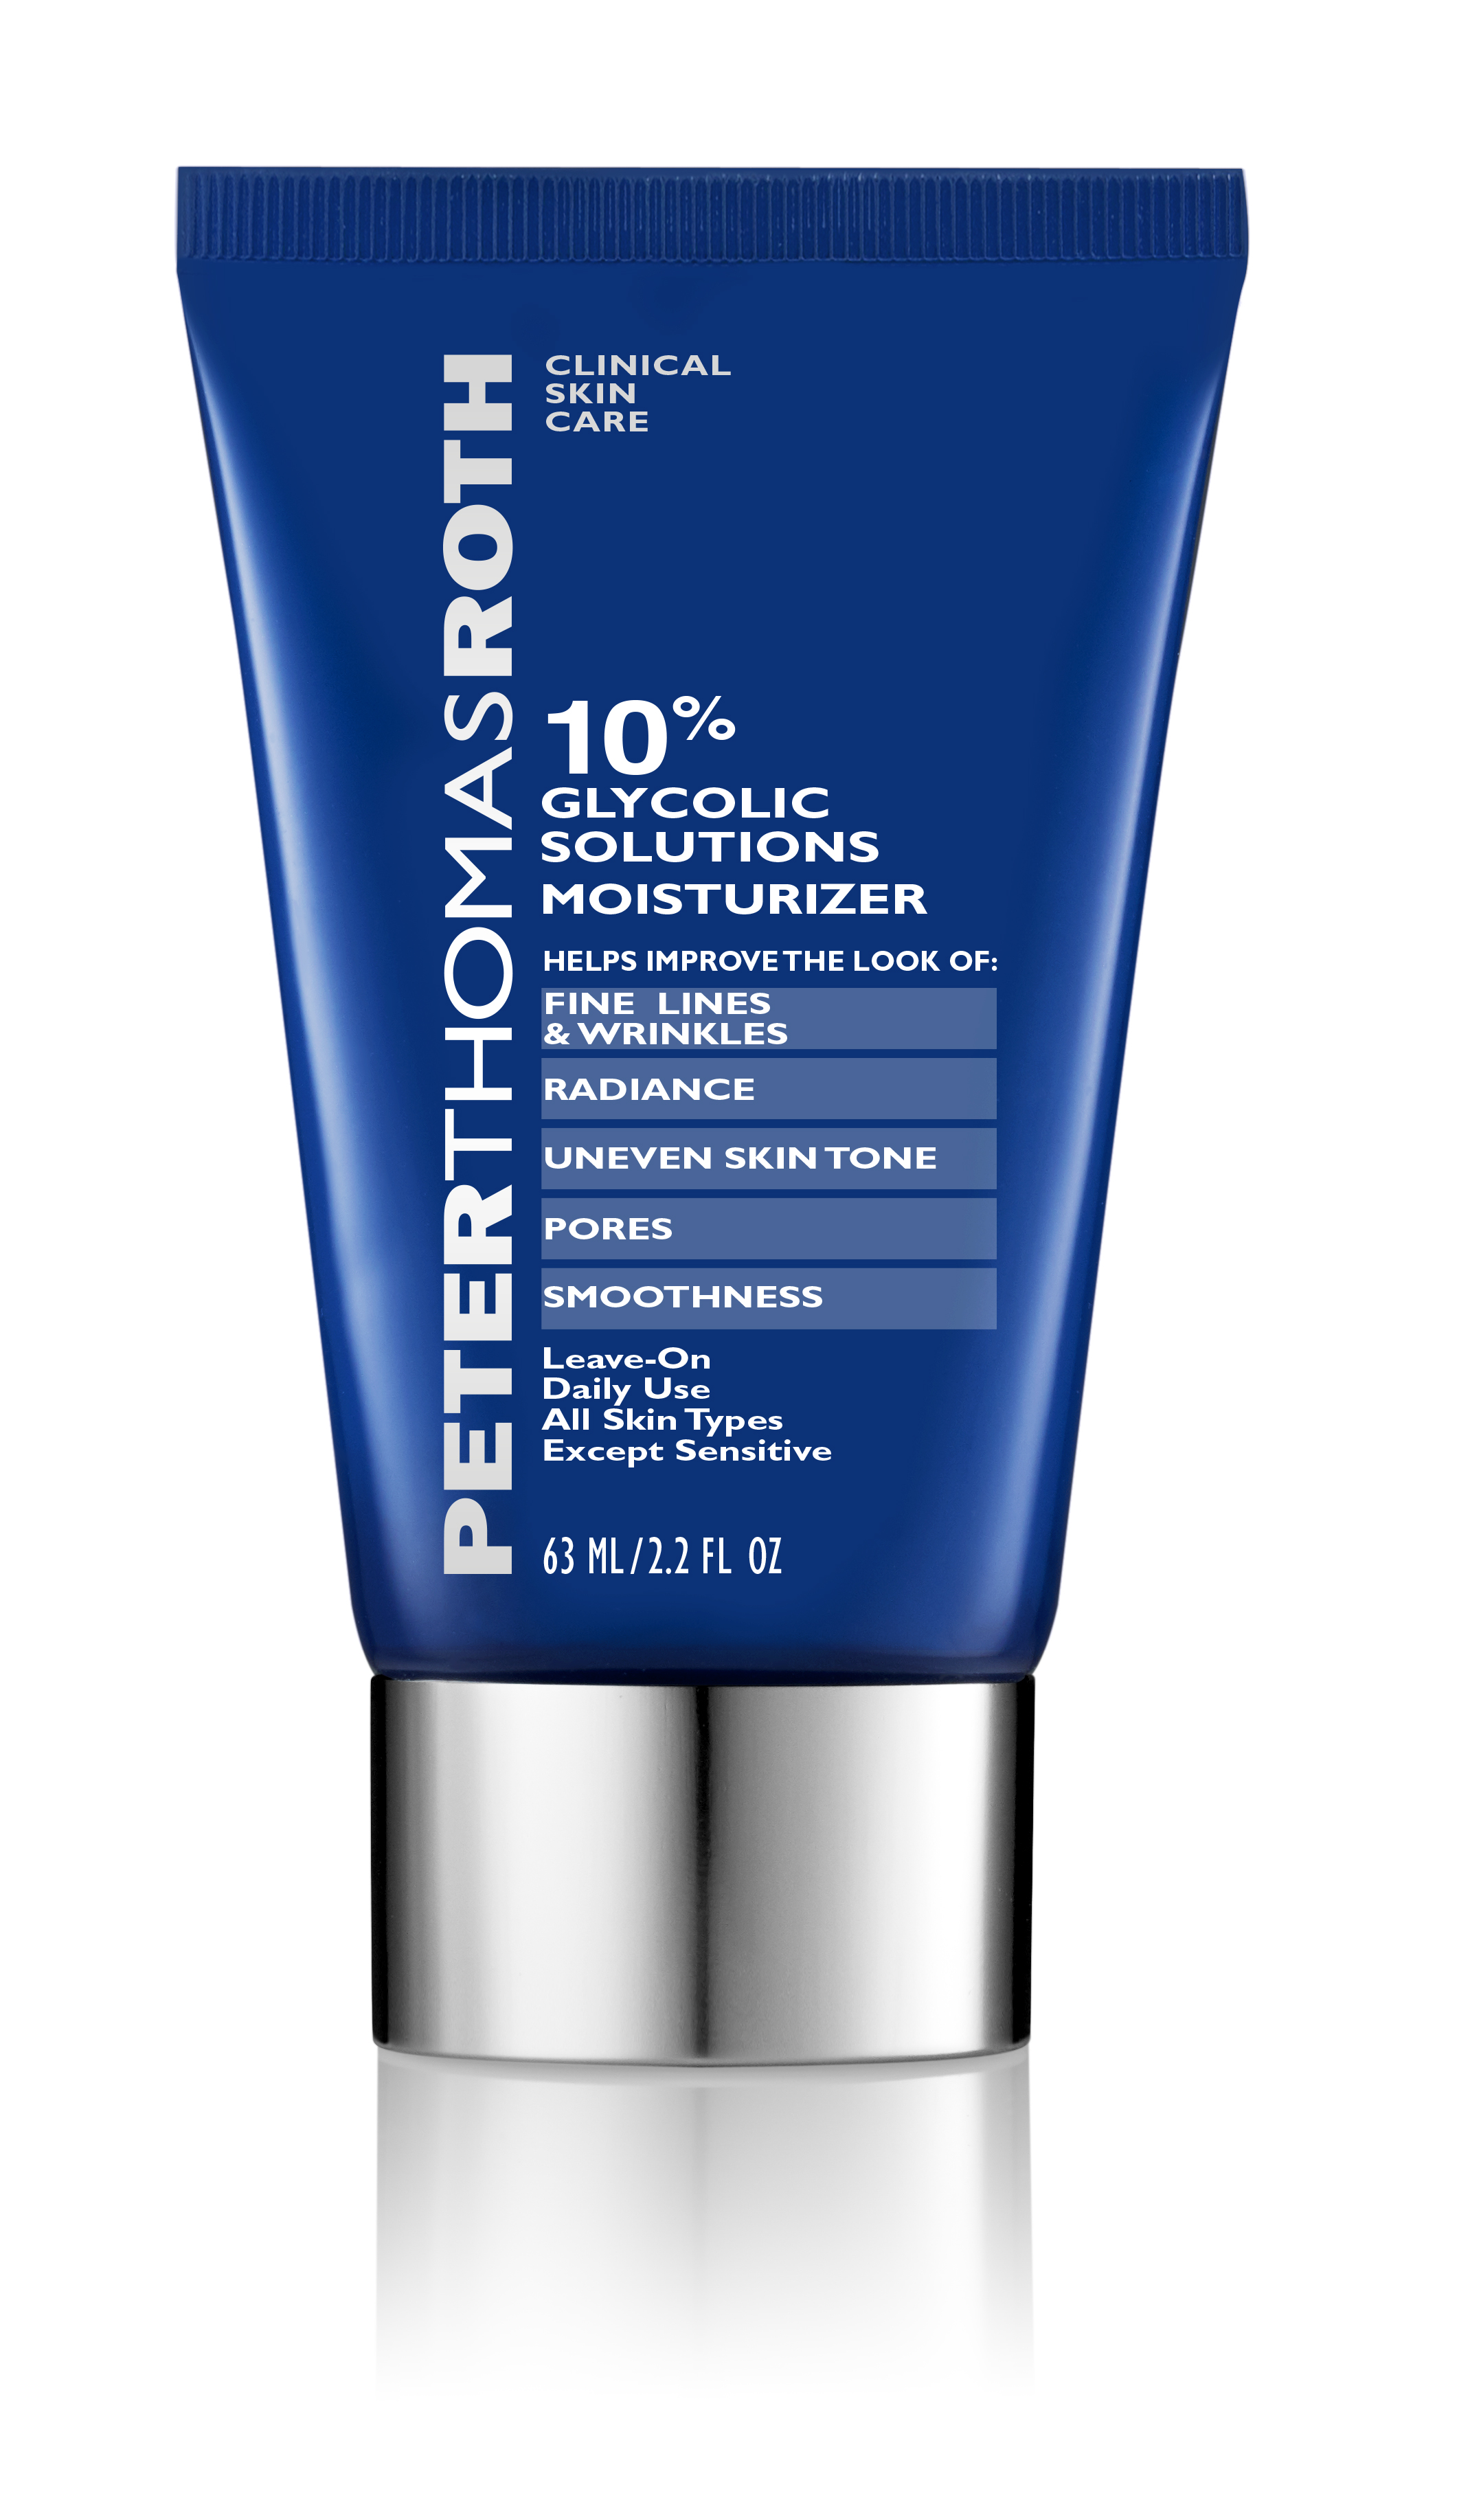 Glycolic Solutions Moisturizer 63 ml